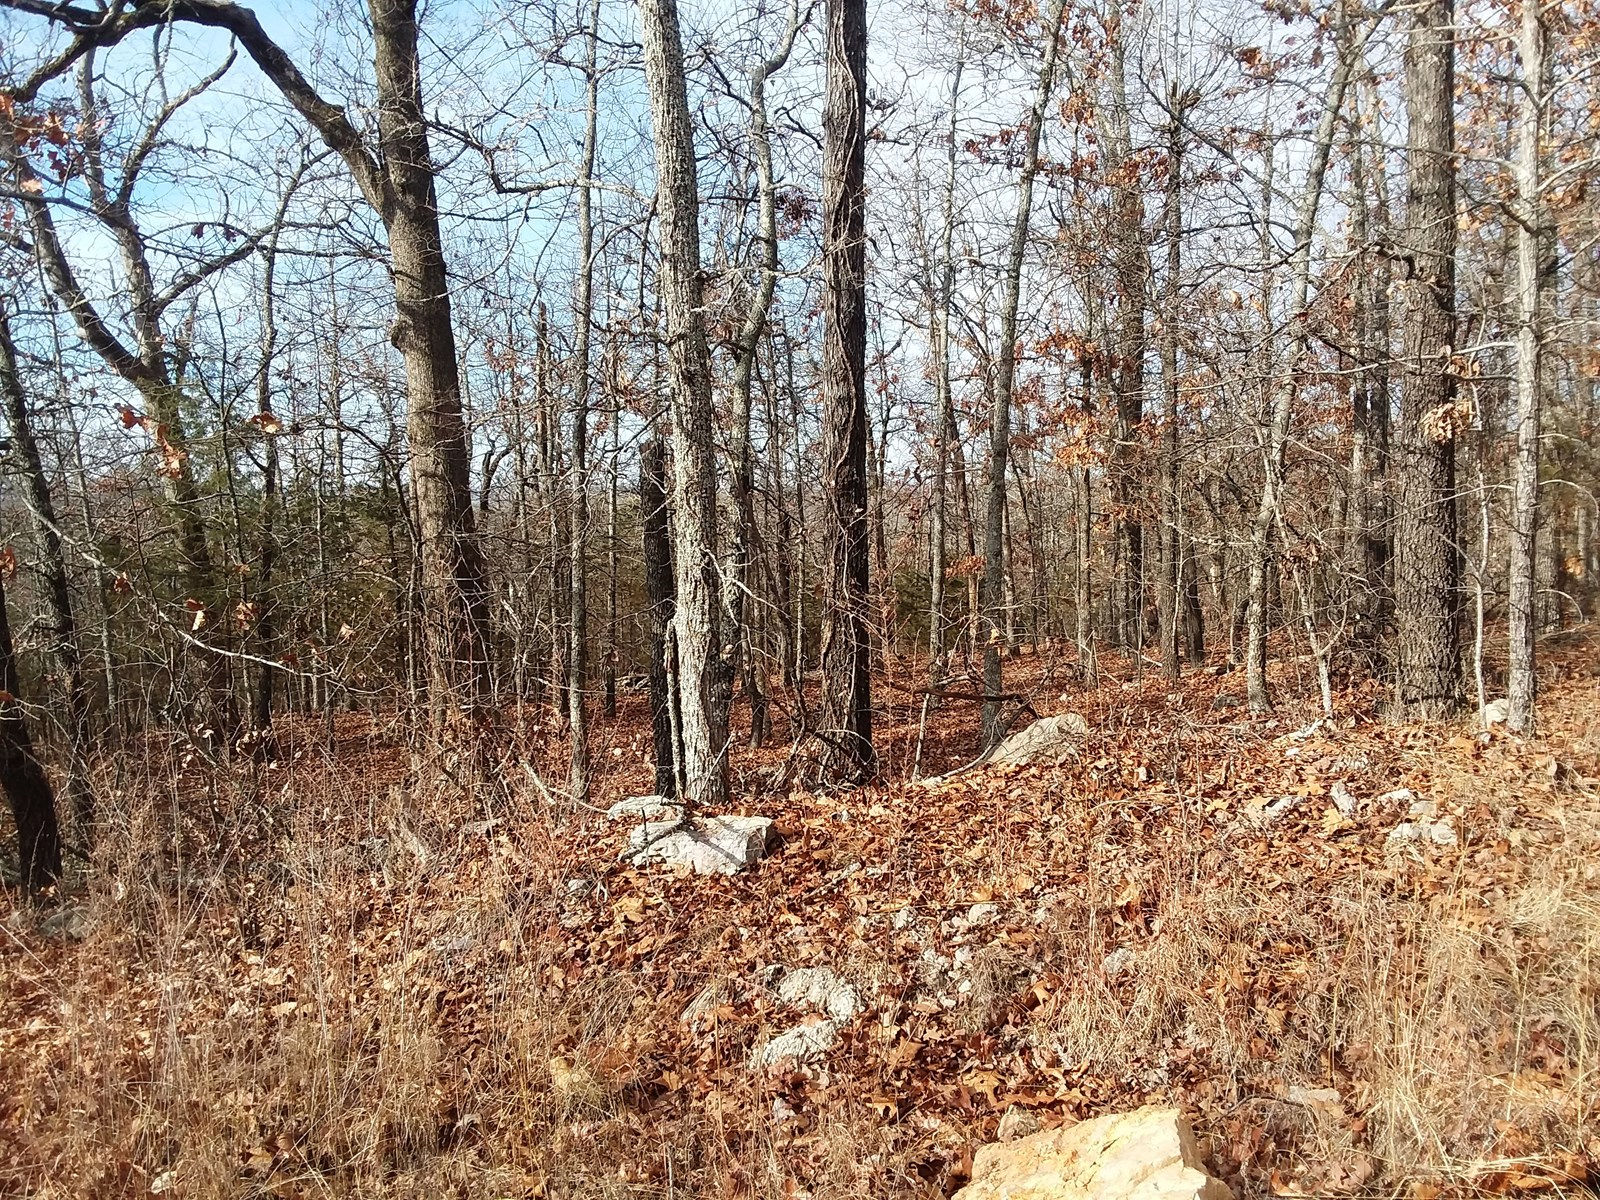 Acreage for sale in Sharp County AR near South Fork RIver